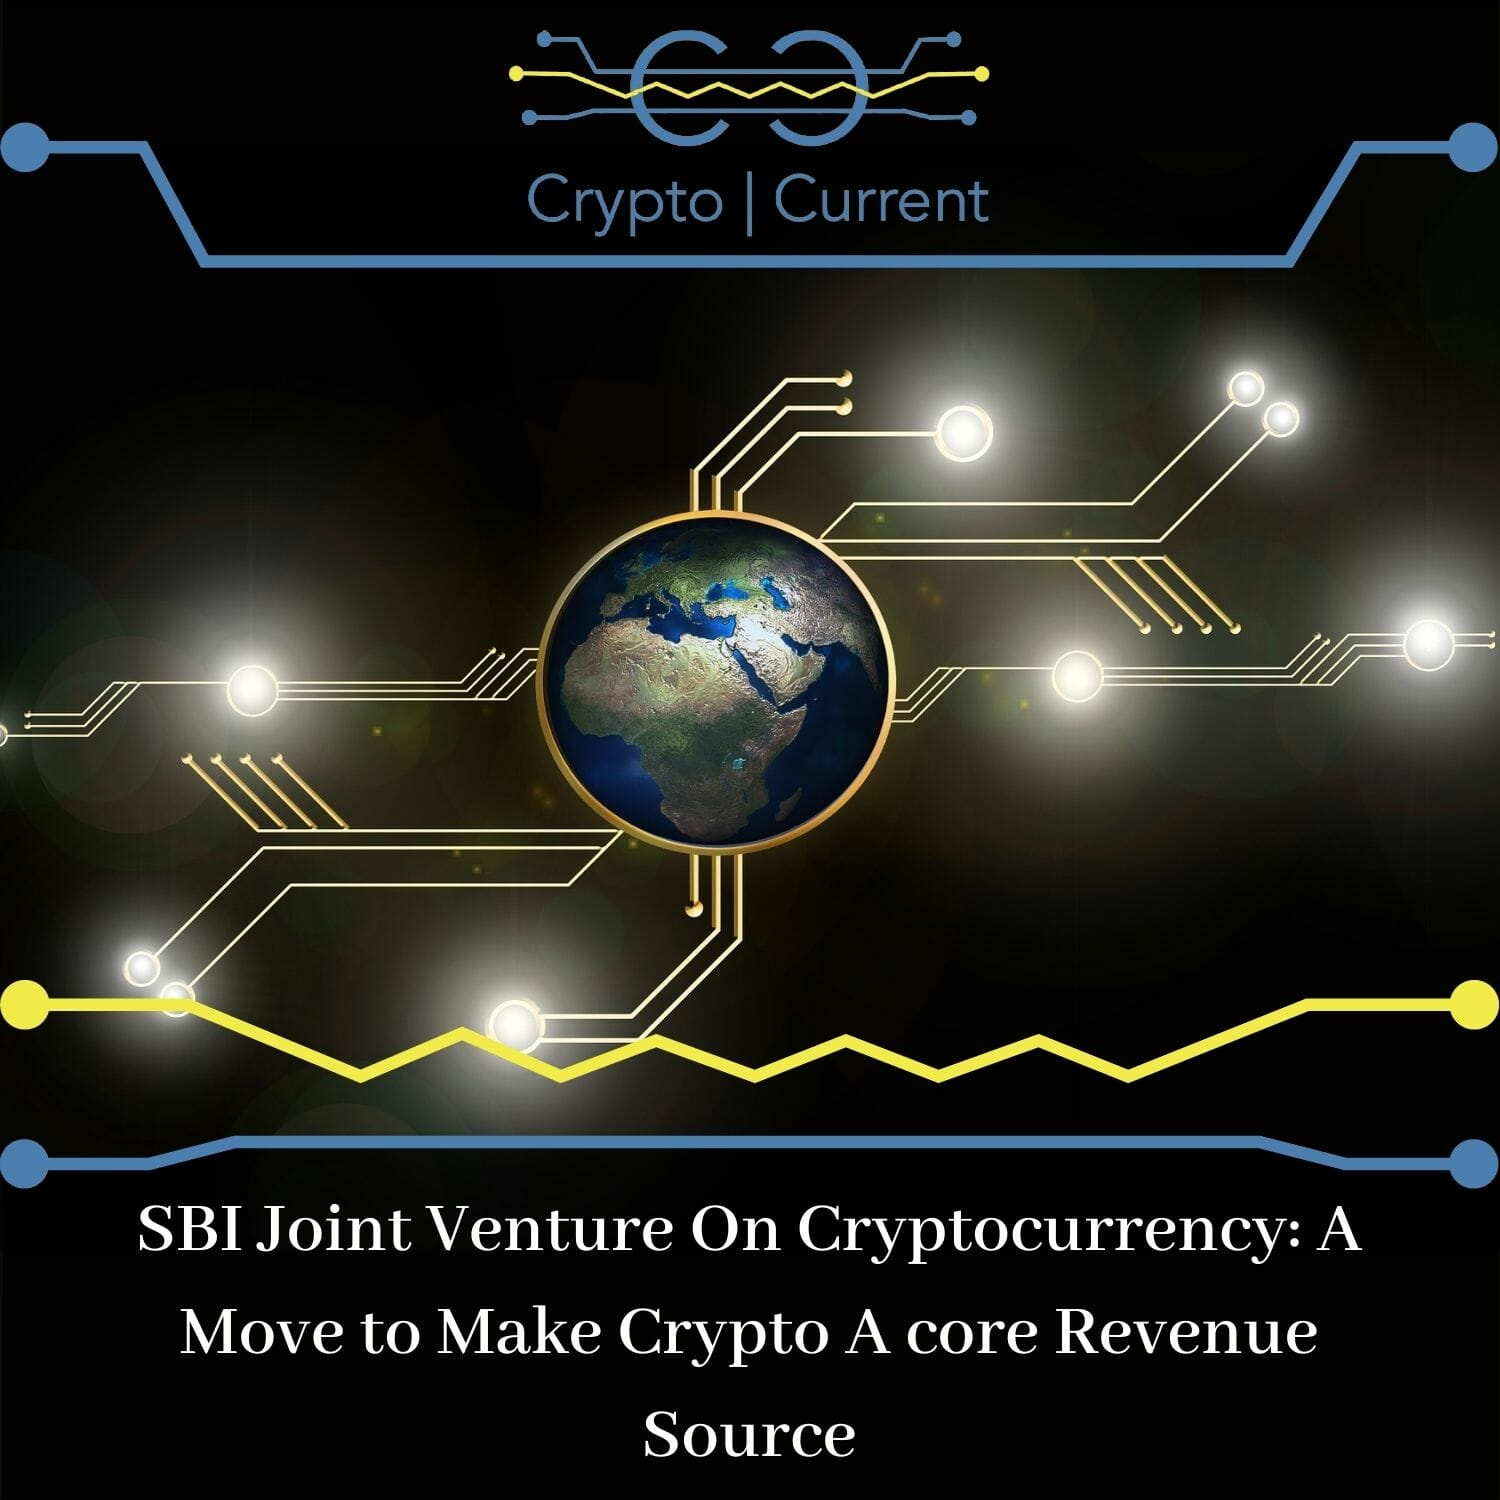 SBI Joint Venture On Cryptocurrency: A Move to Make Crypto A core Revenue Source